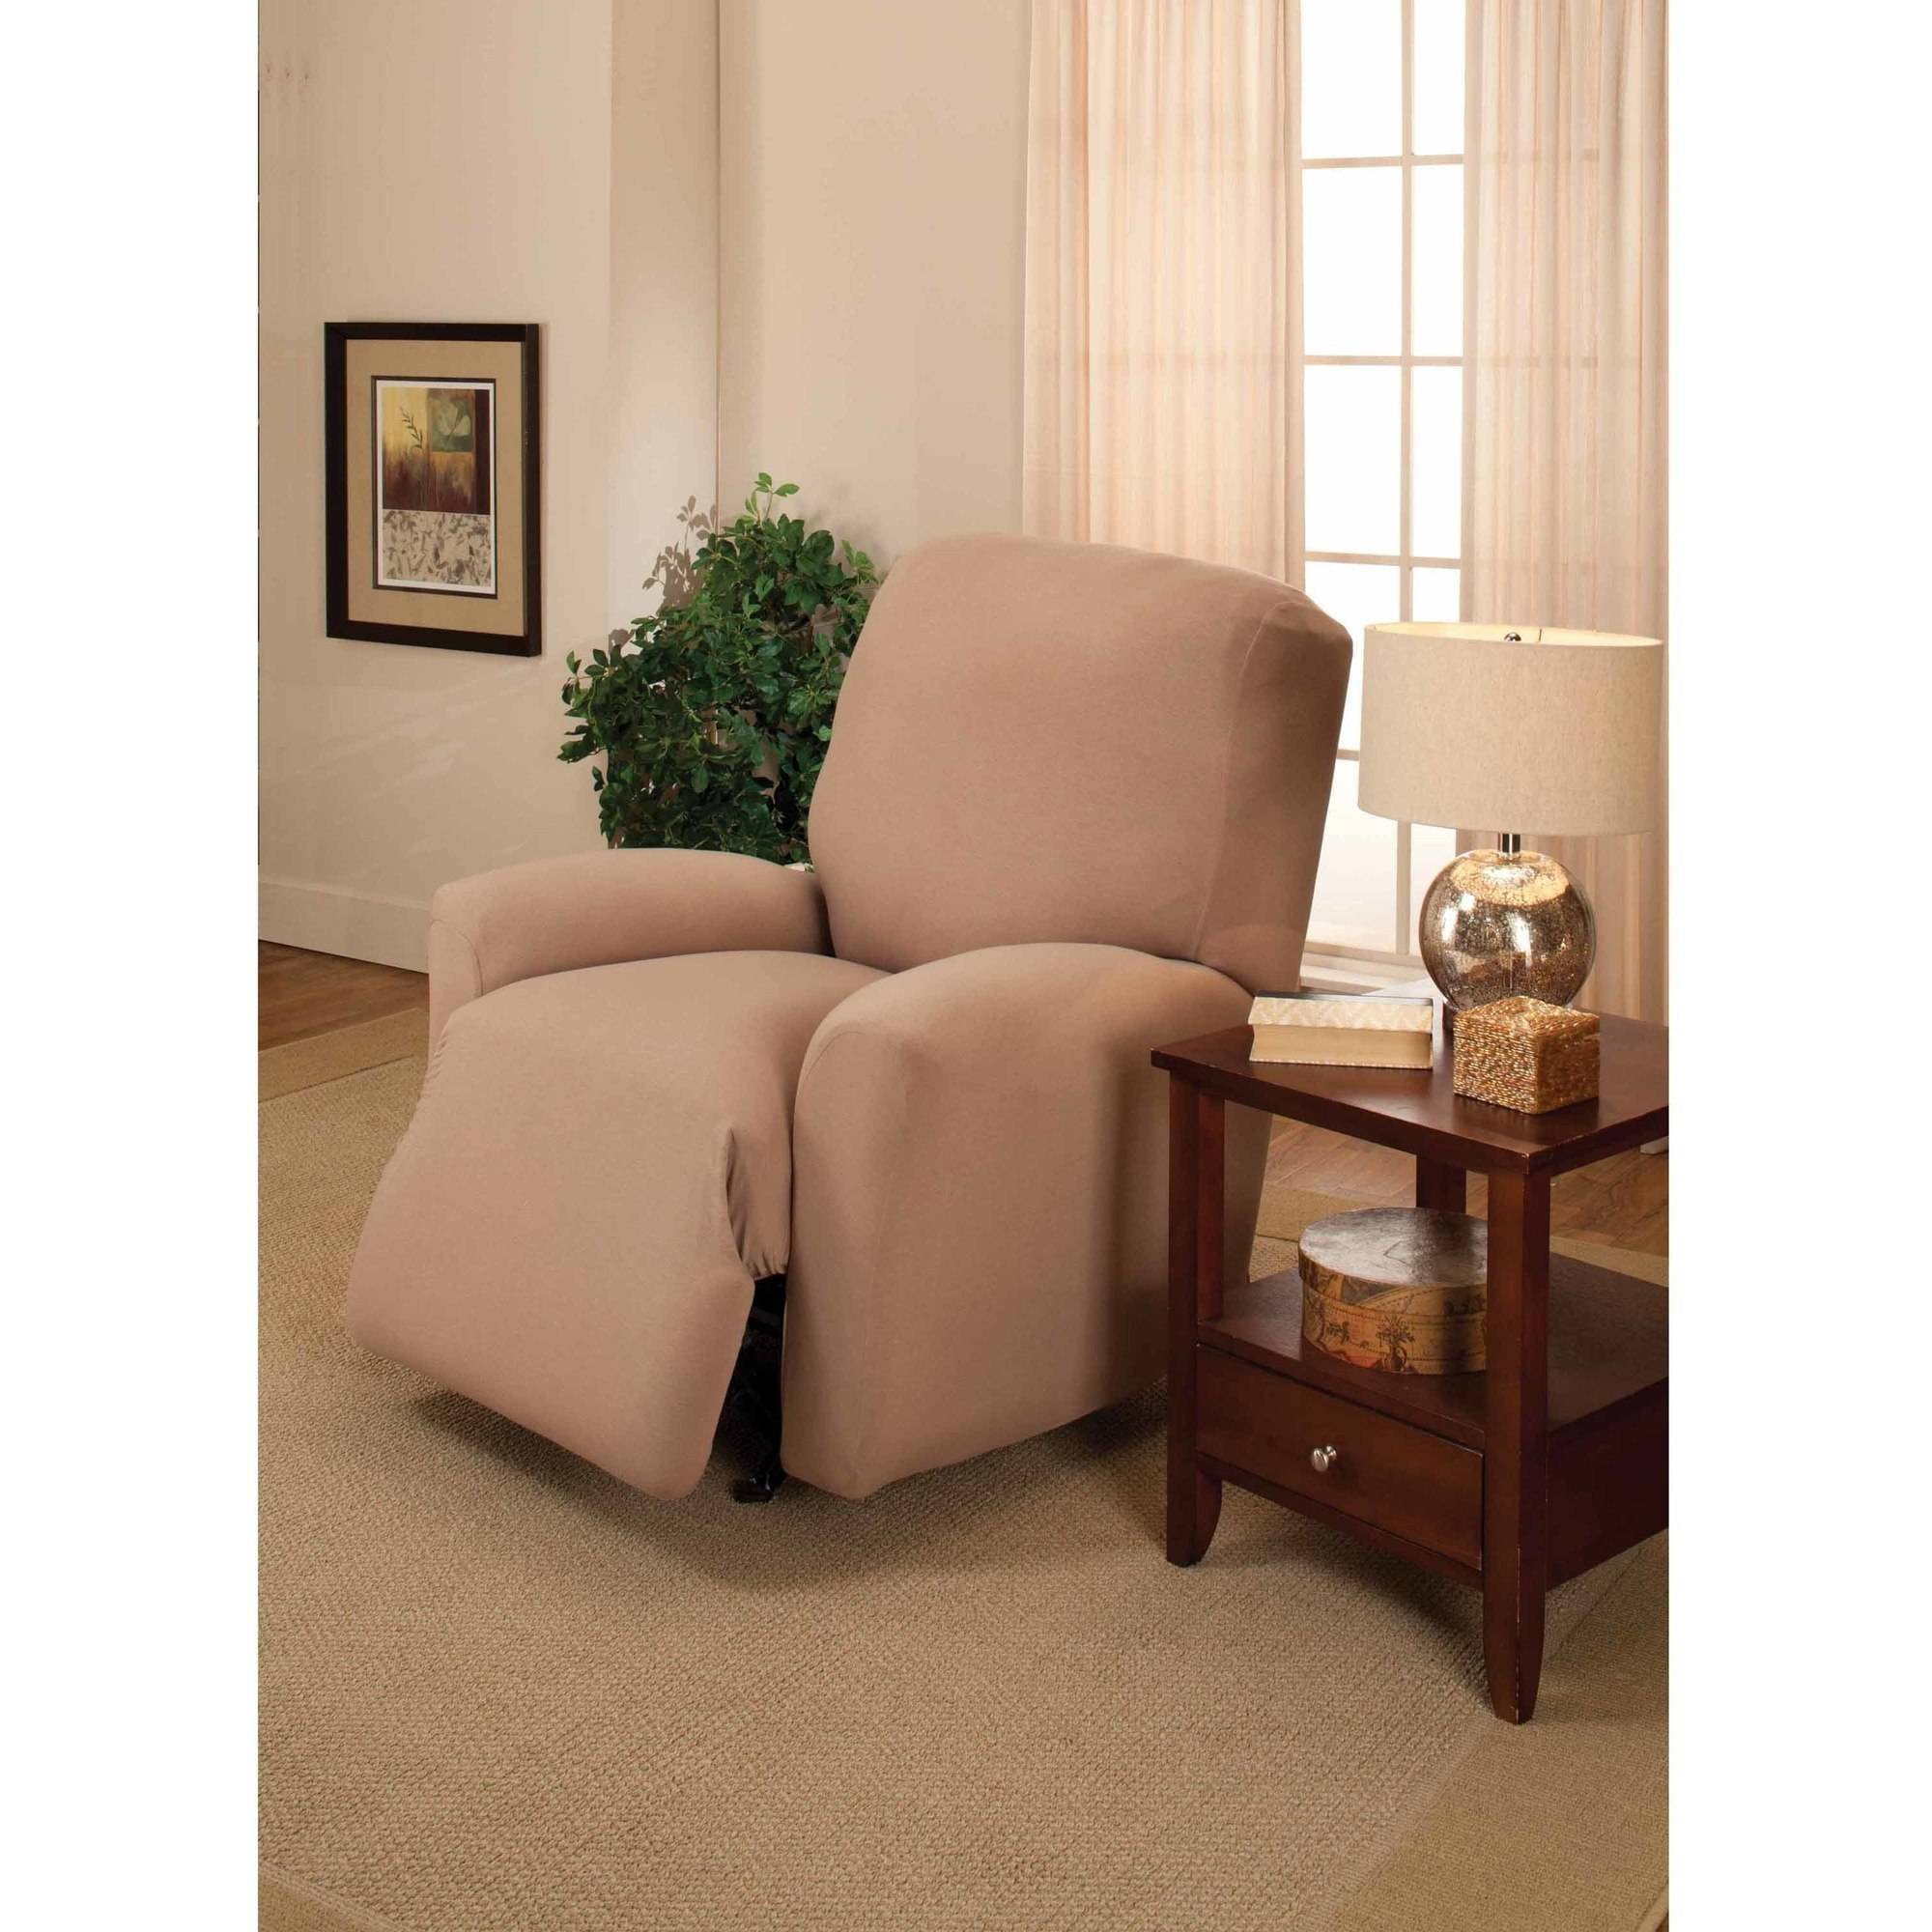 Slipcovers Walmart